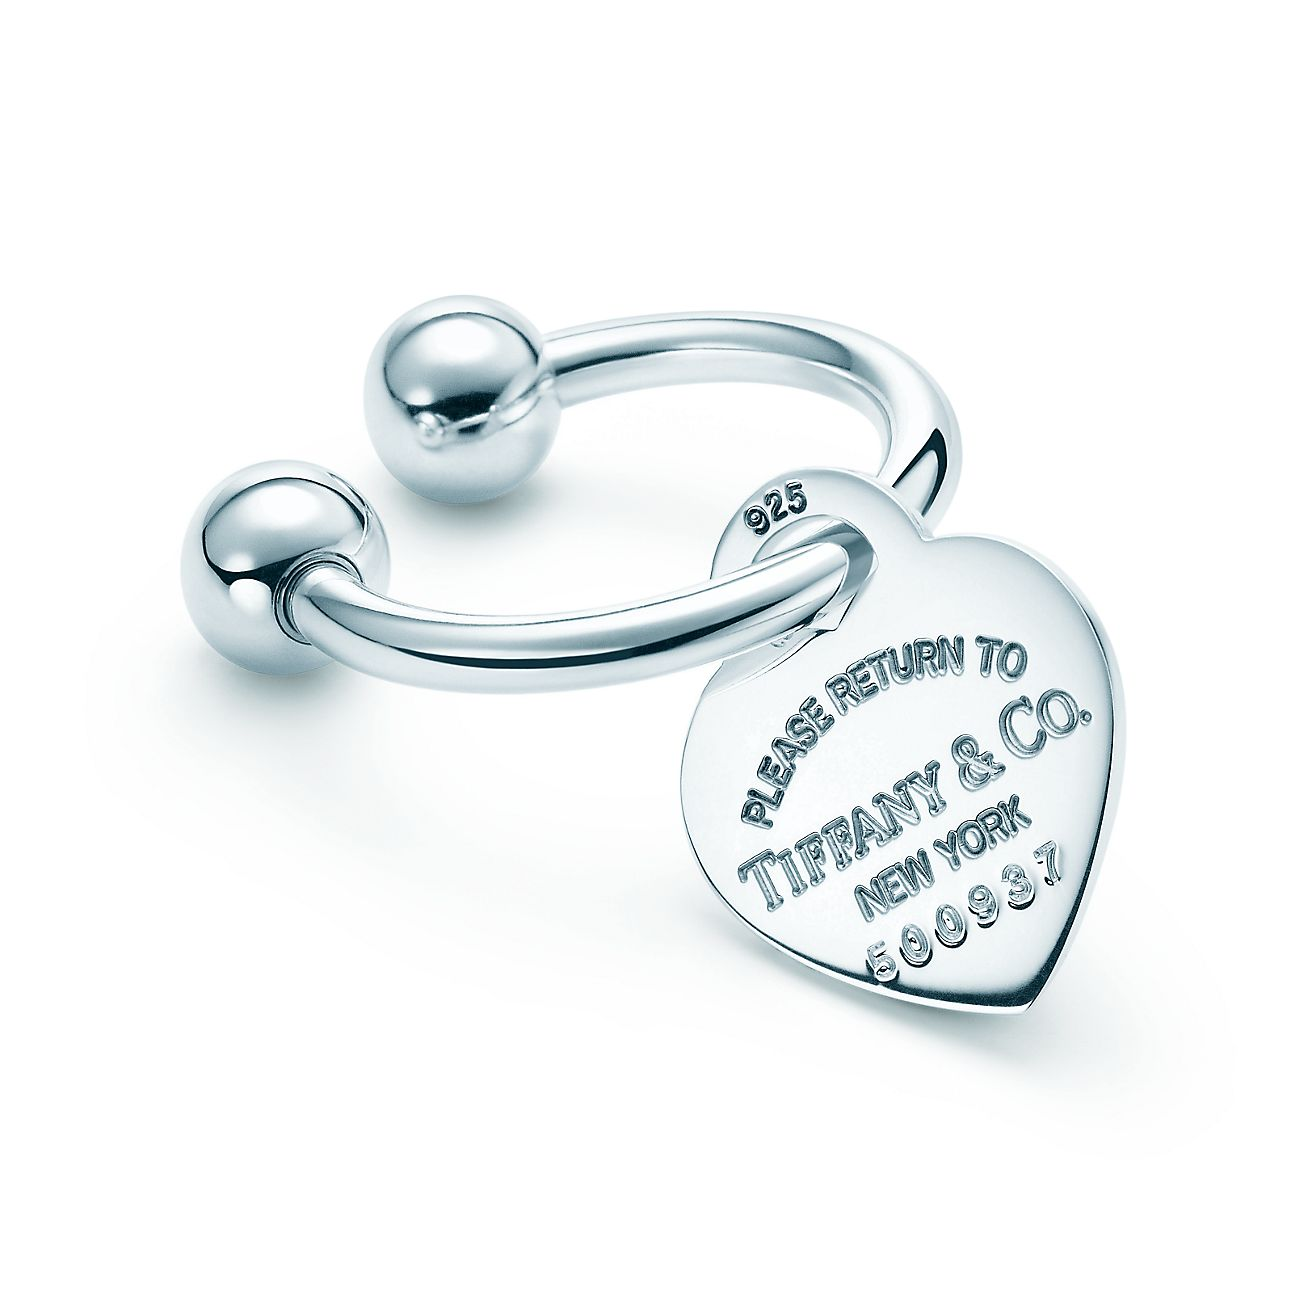 Accessories Key Rings Return To Tiffany Heart Tag Key Ring 15882212 Tiffany Key Rings